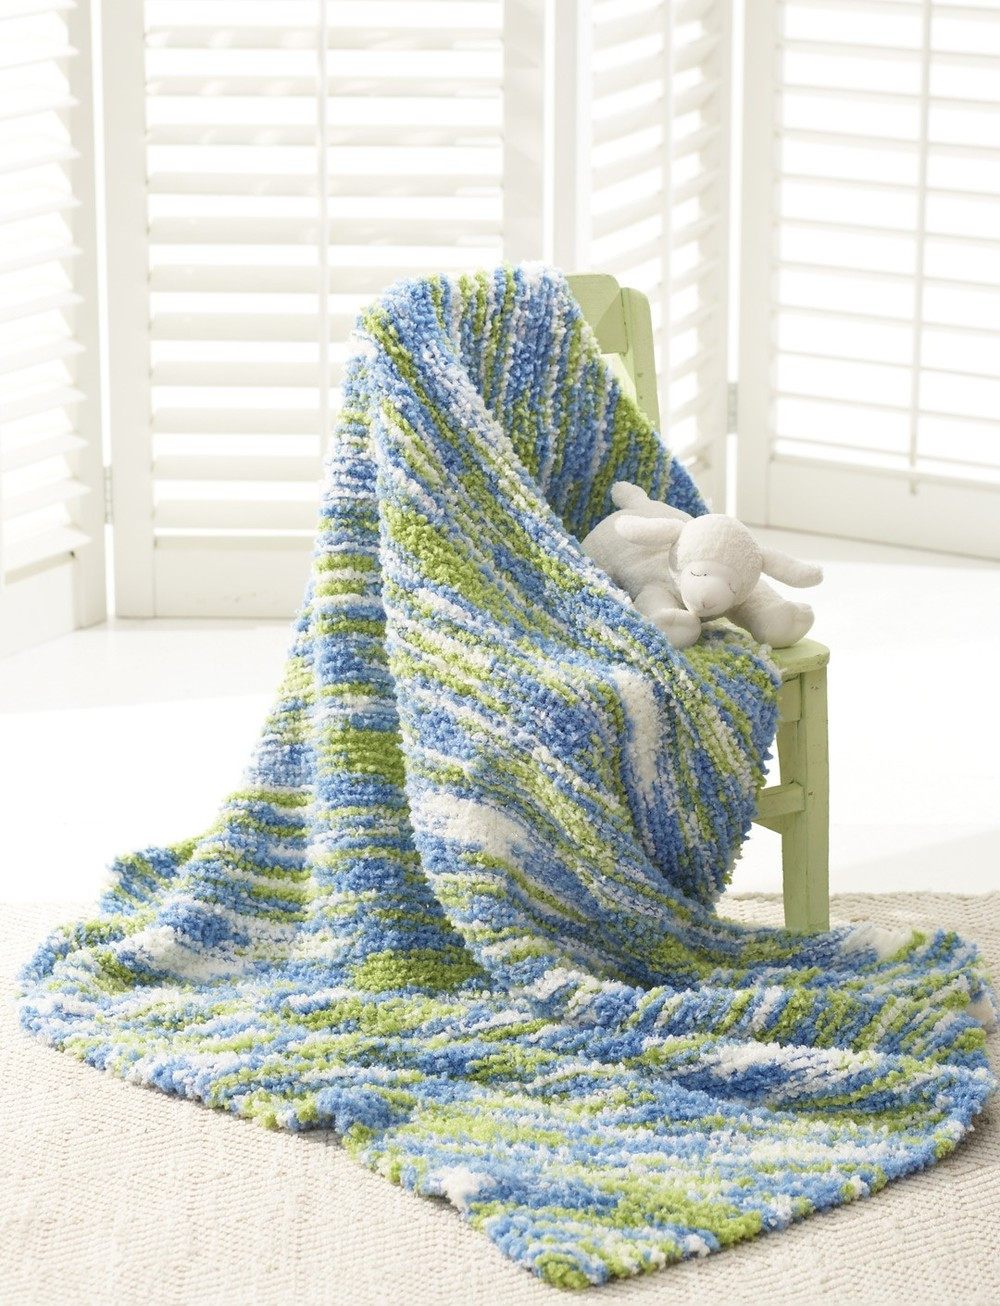 Baby Blanket Yarn Beautiful the Land and the Sea Baby Blanket Of Marvelous 45 Ideas Baby Blanket Yarn